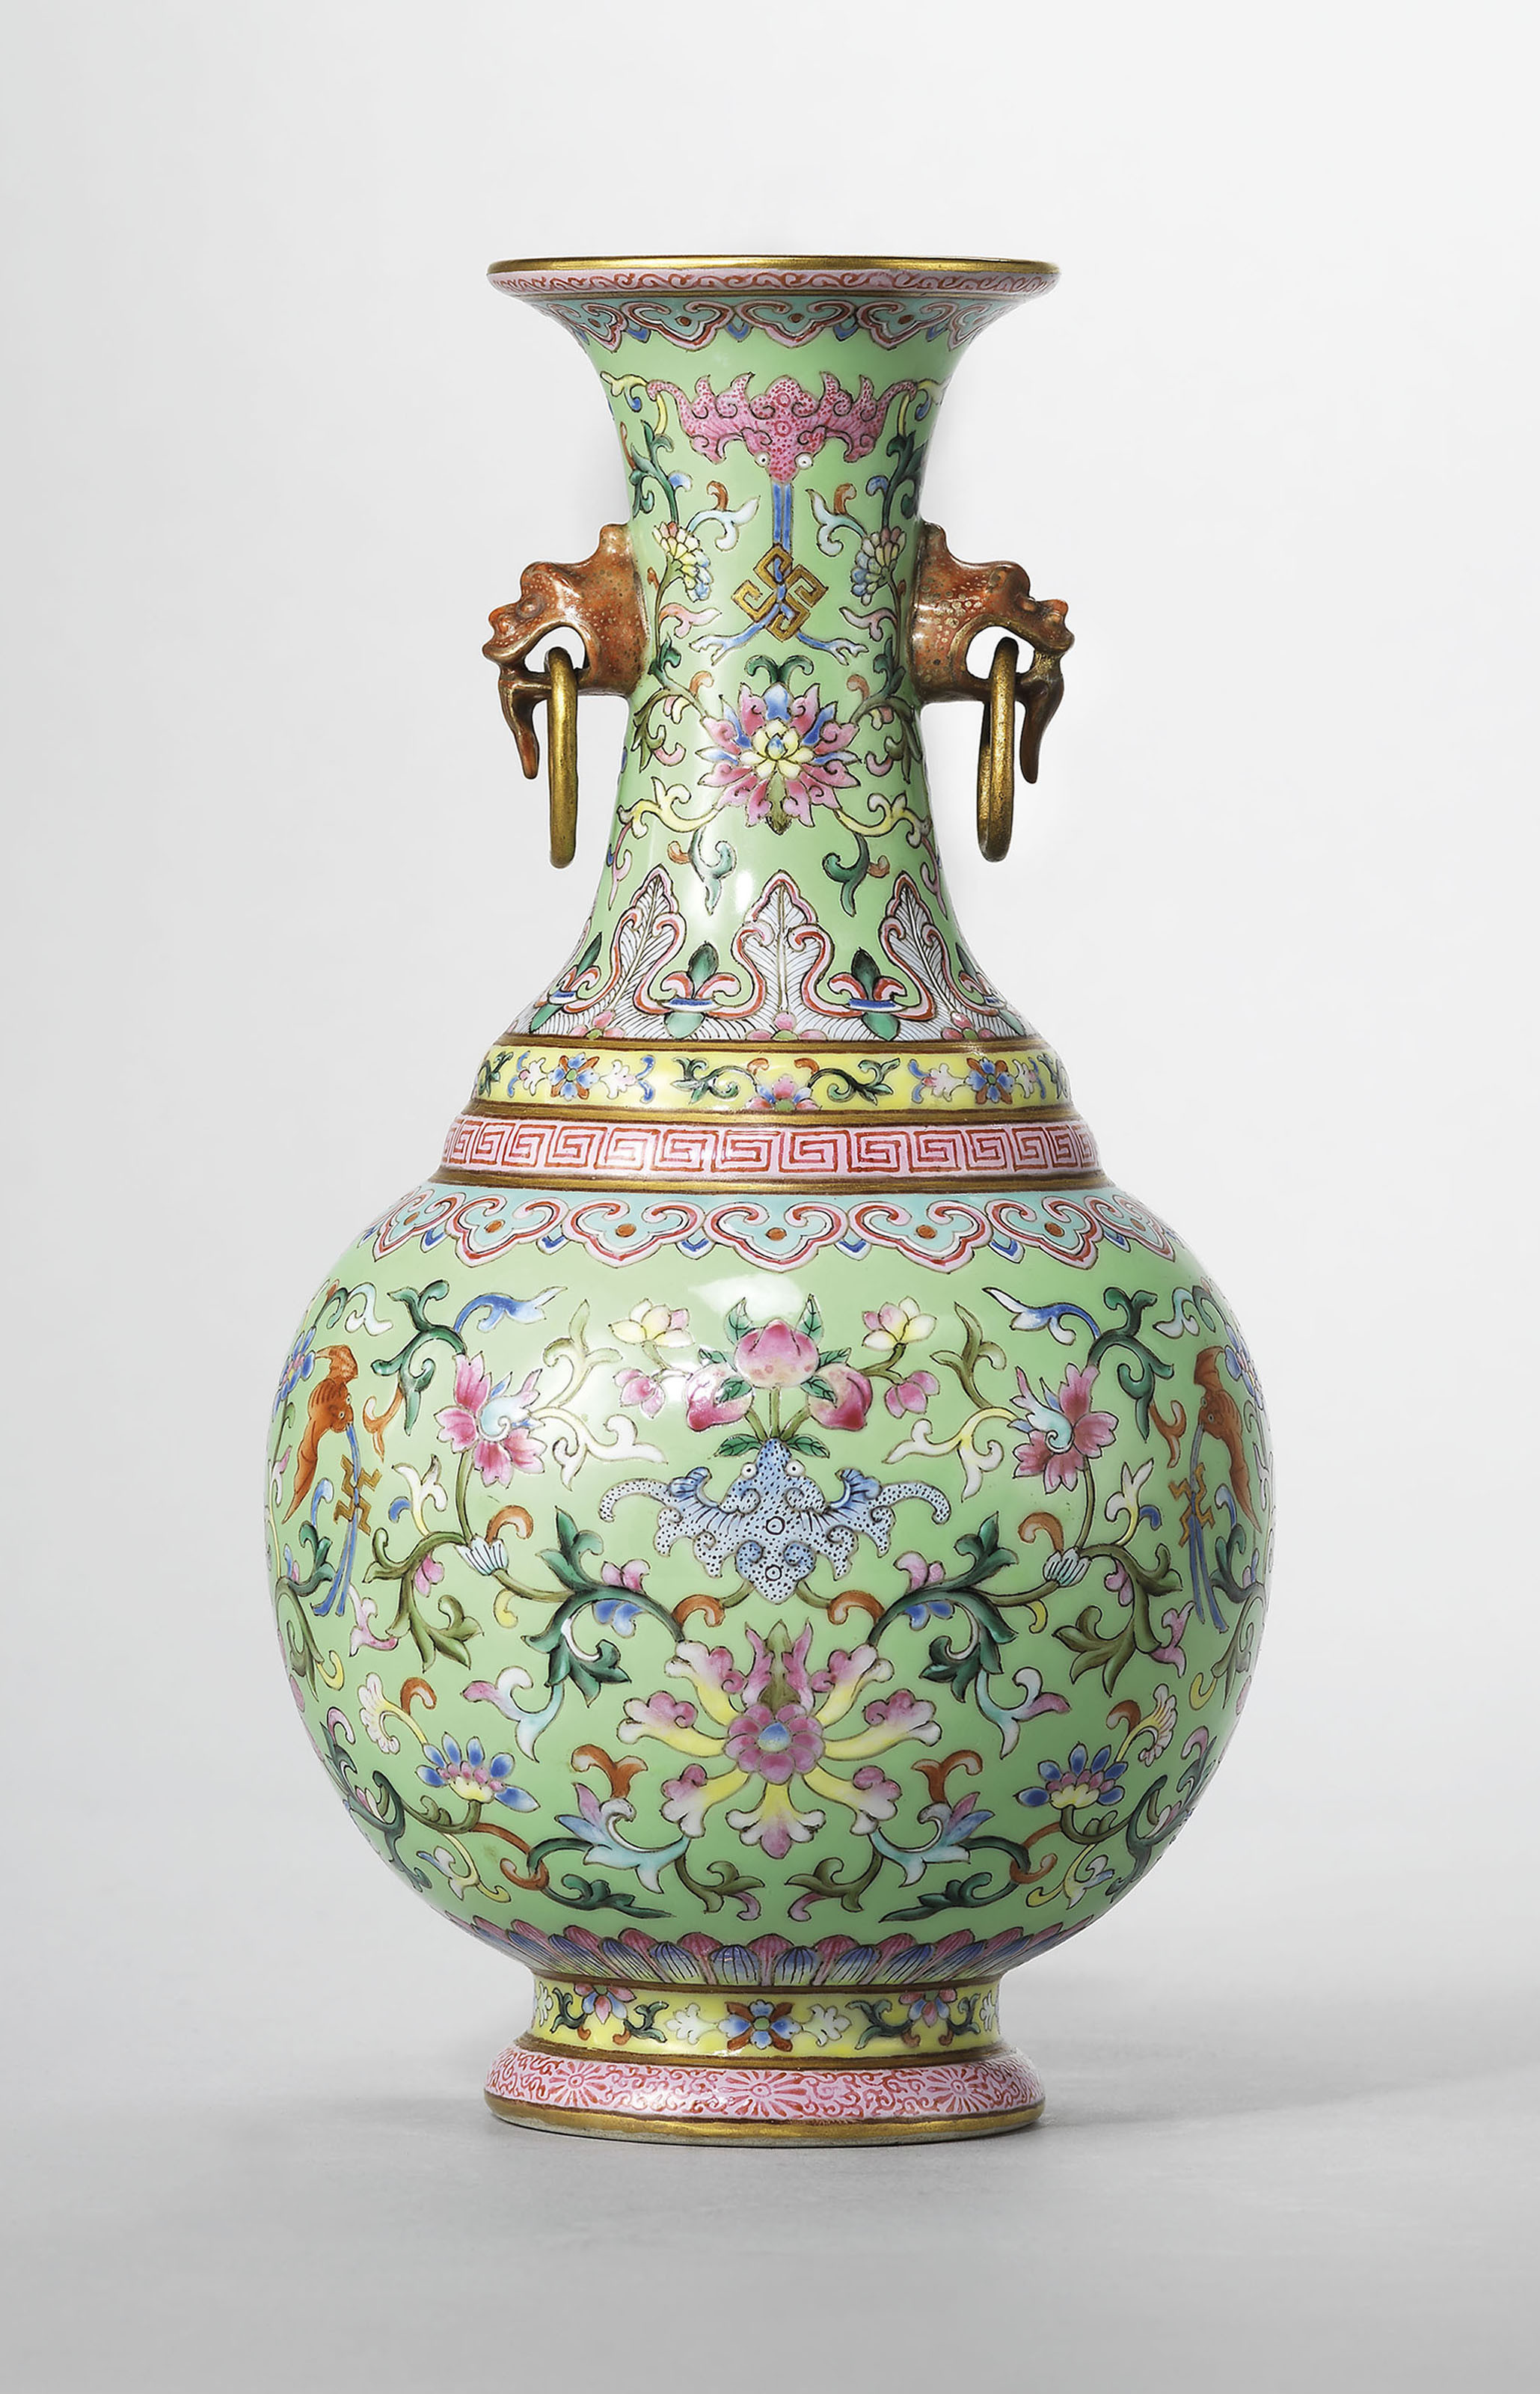 chinese porcelain vase of chinese floor vase photos a guide to the symbolism of flowers on with regard to a guide to the symbolism of flowers on chinese ceramics ceramic vase